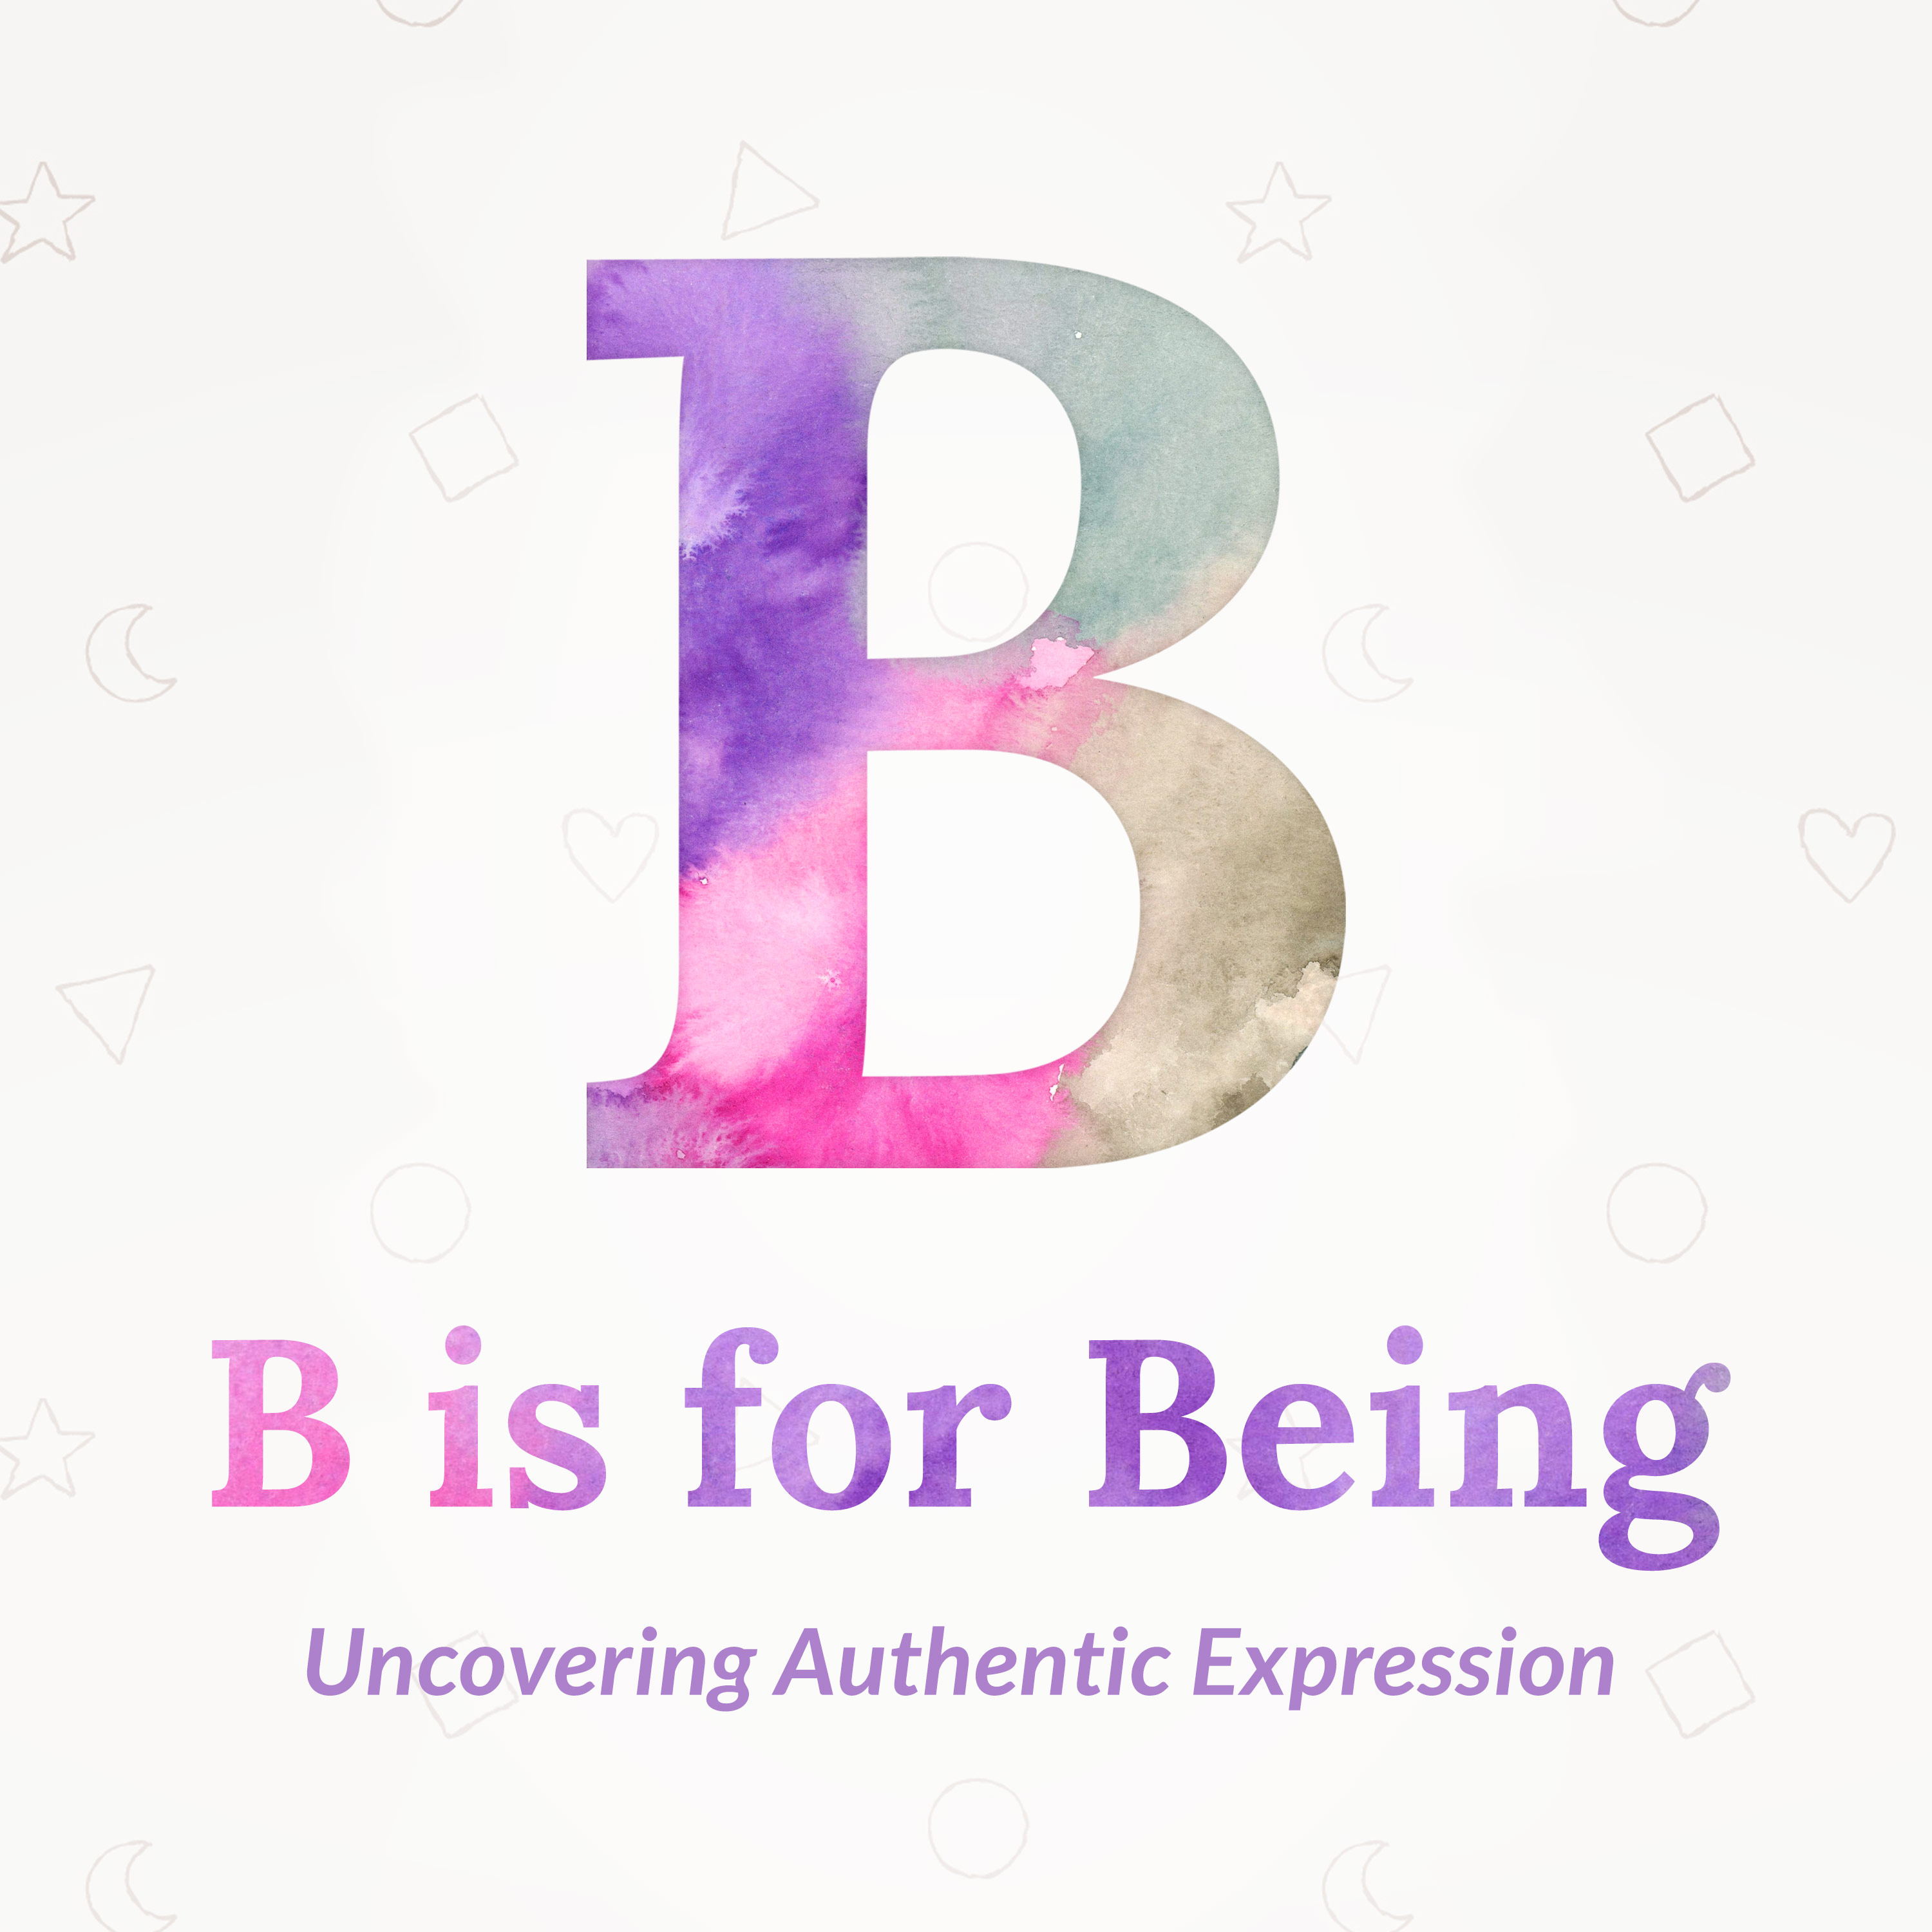 B is for Being